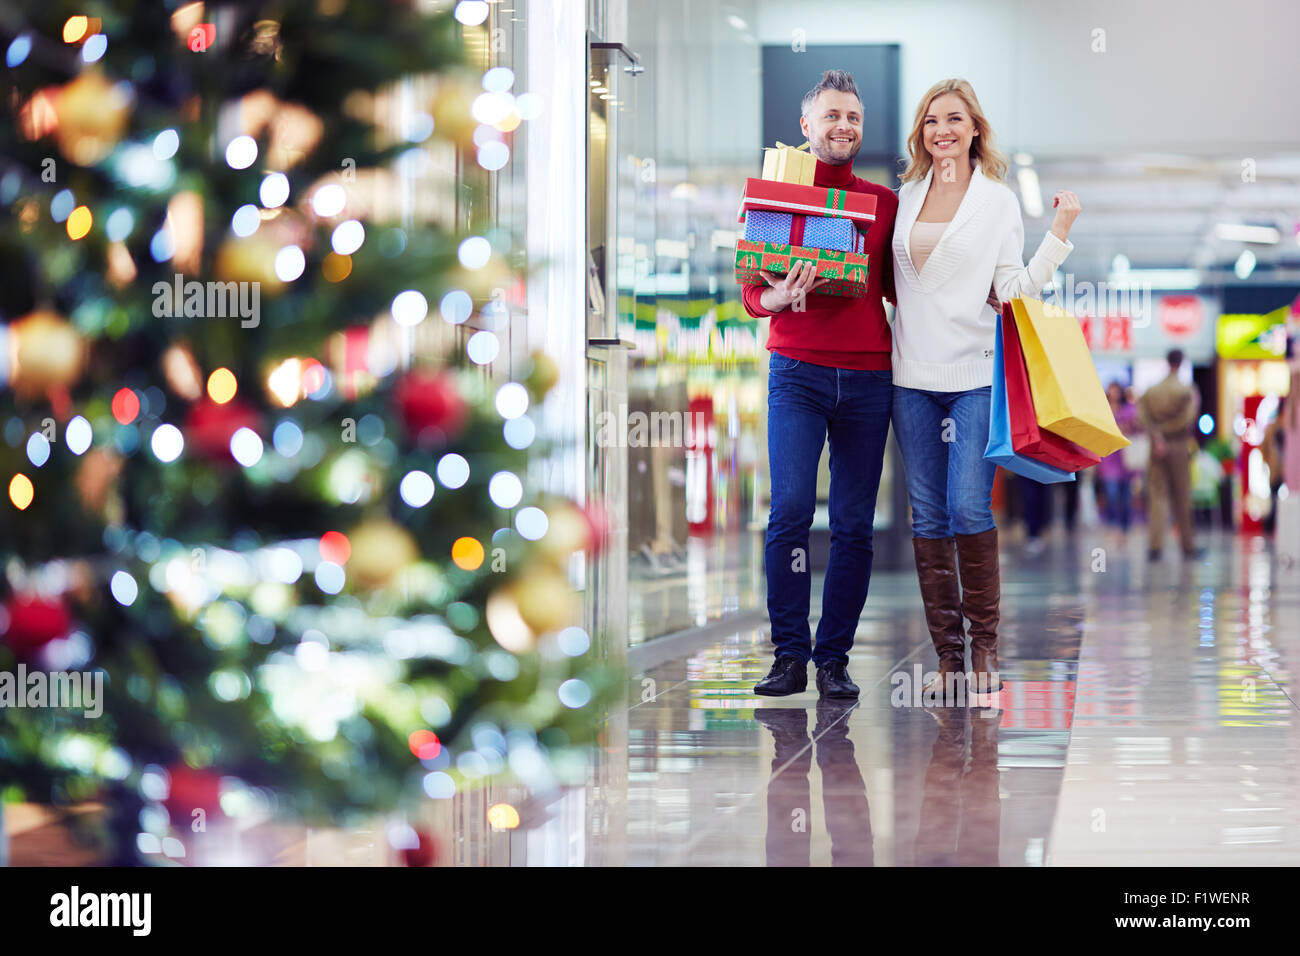 Affectionate couple buying Christmas presents on holiday eve - Stock Image